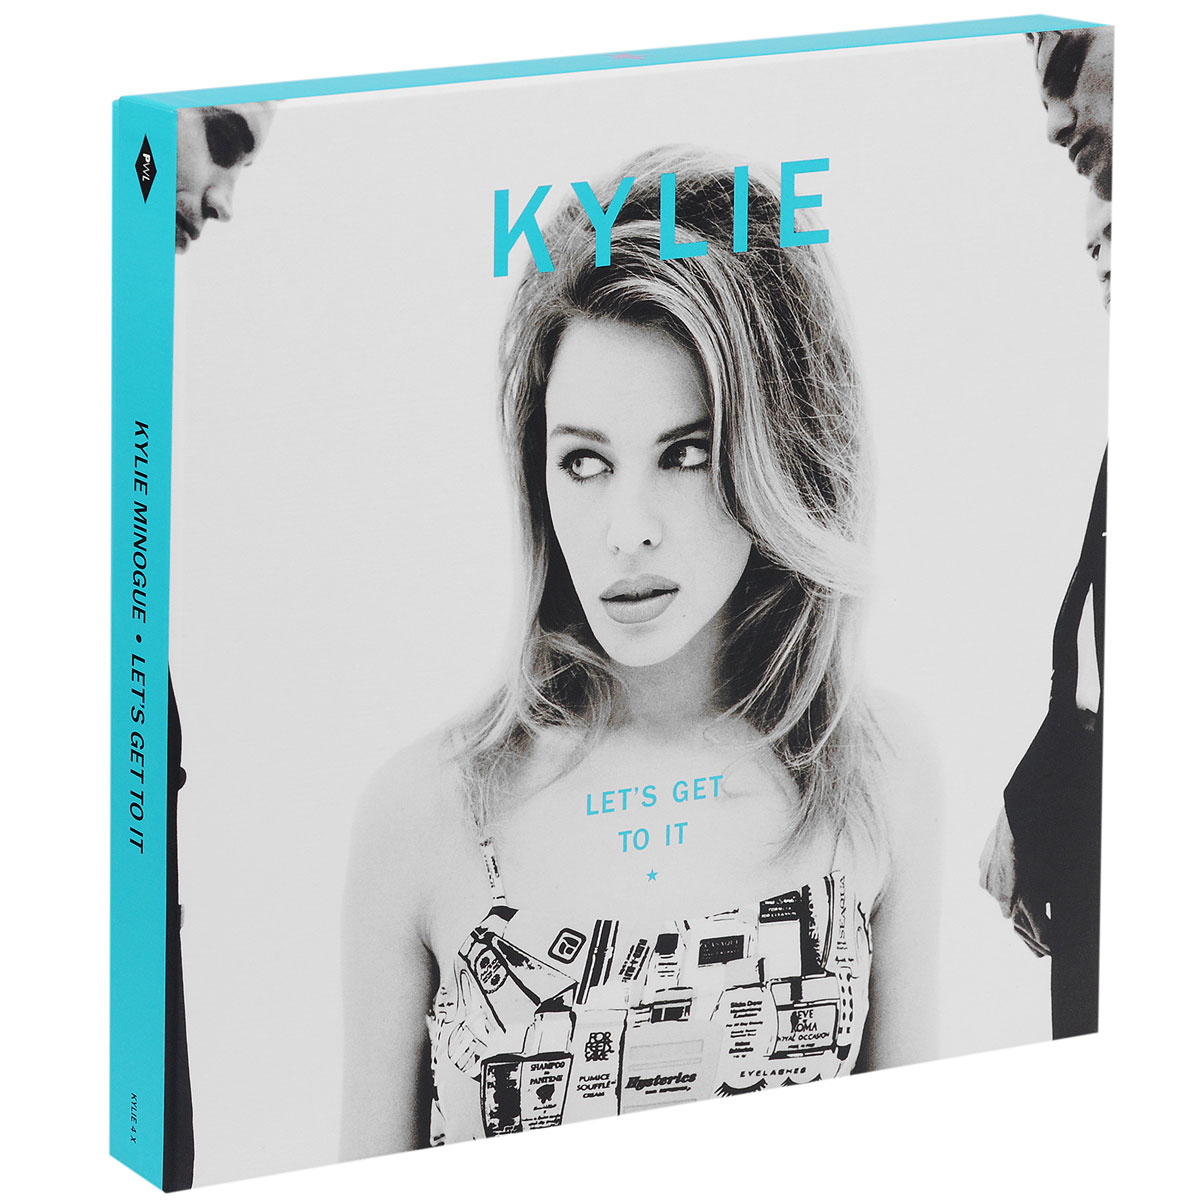 Кайли Миноуг Kylie Minogue. Let's Get To It (2 CD + DVD + LP) the best of kylie minogue special edition cd dvd